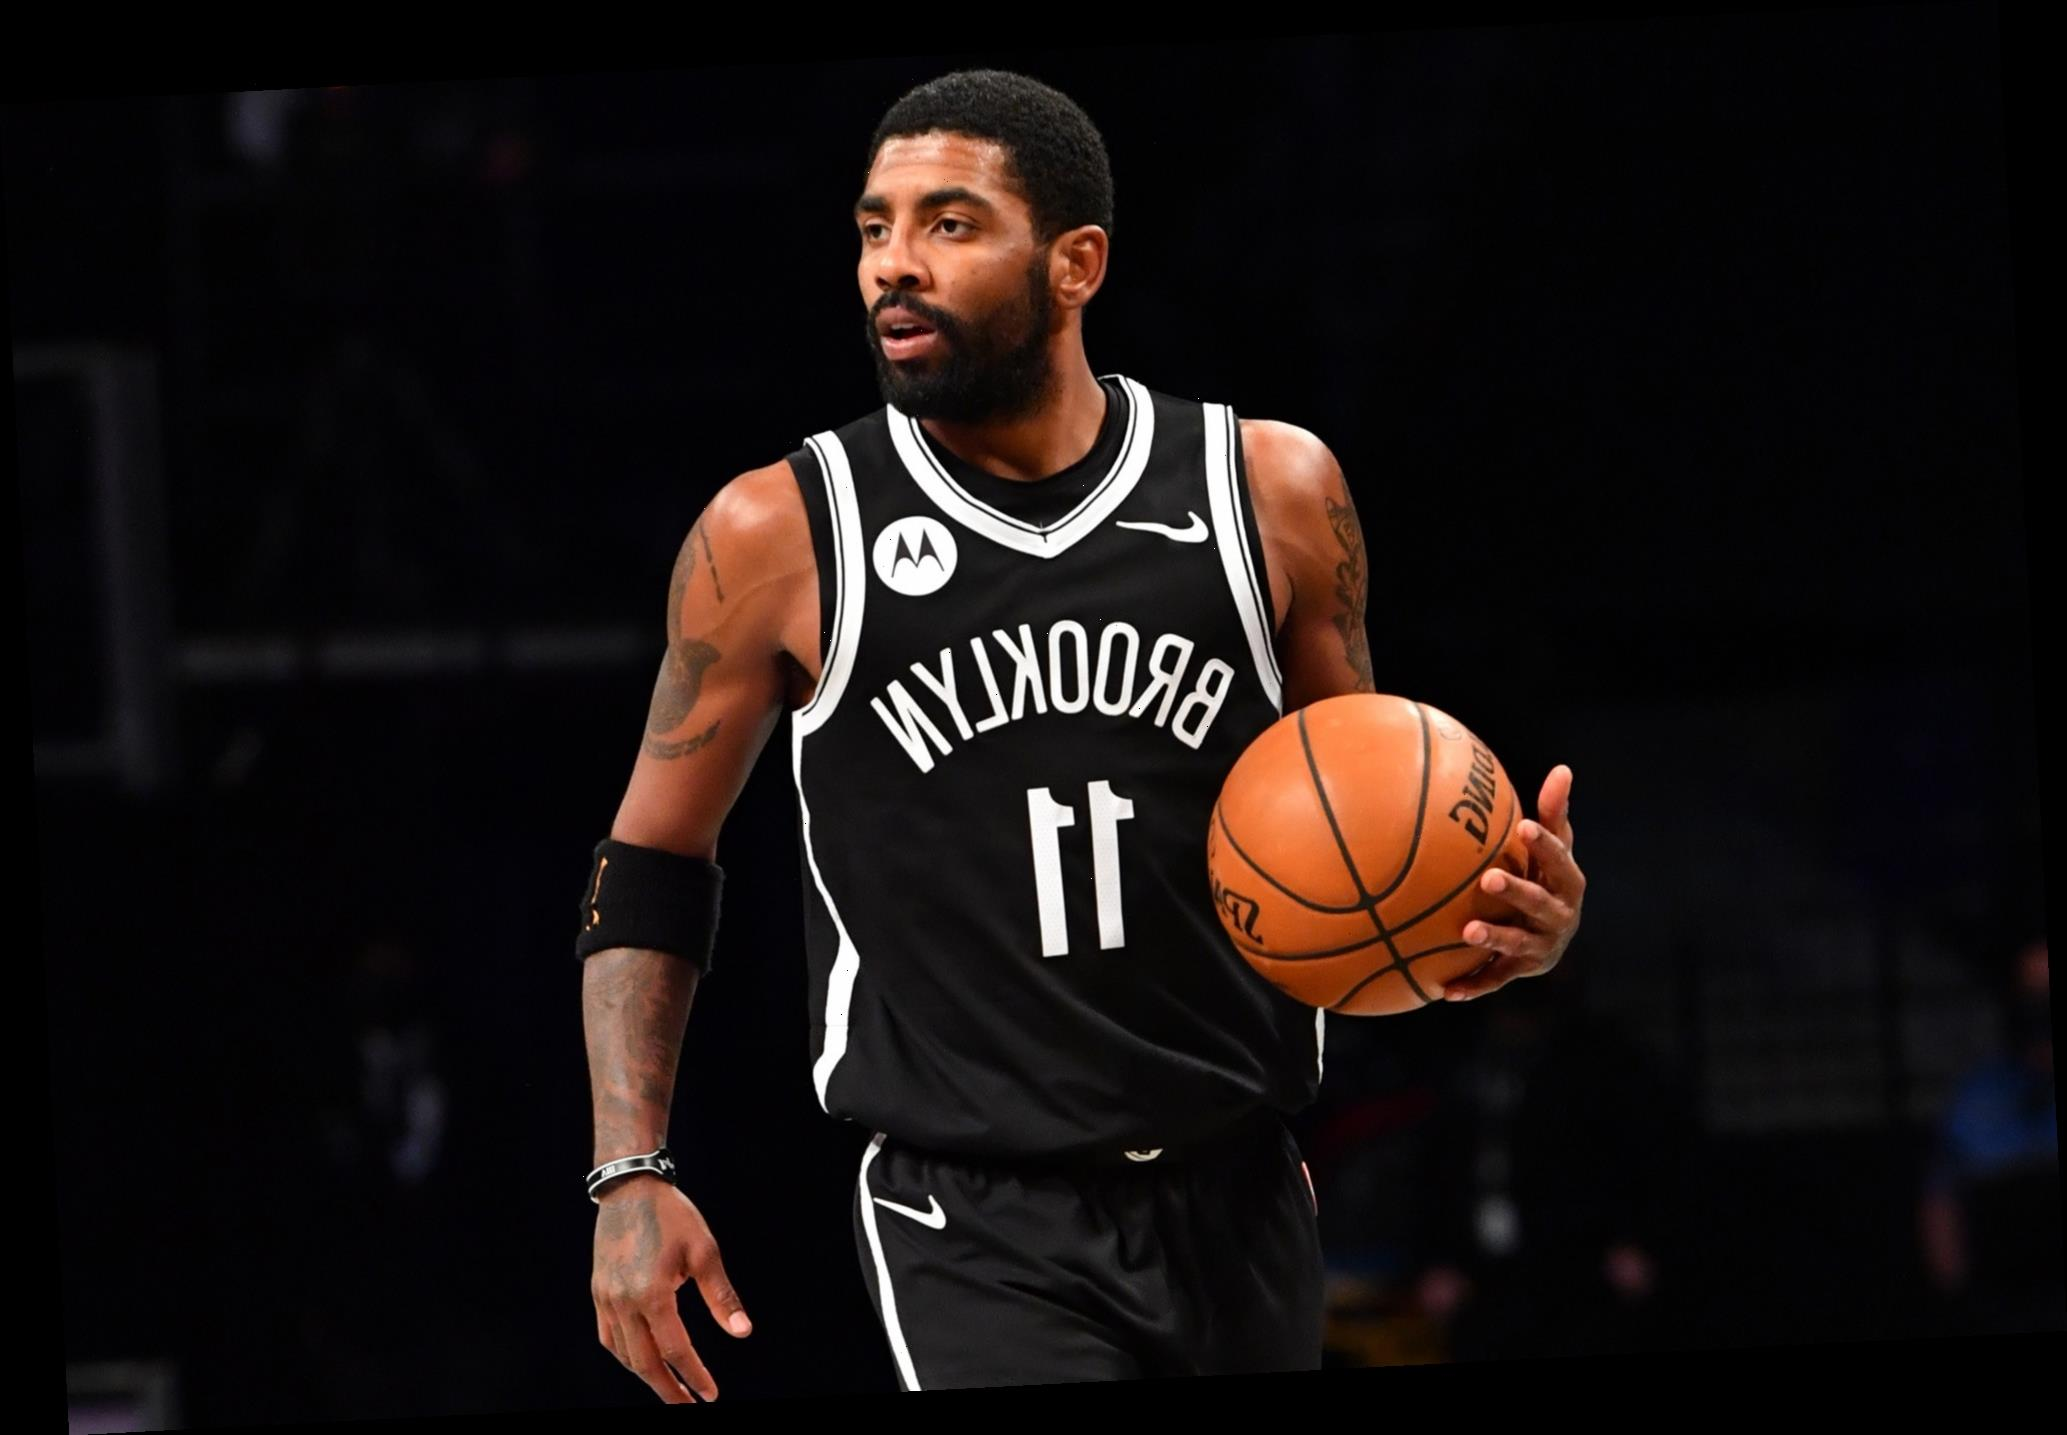 Kyrie Irving's Nets status is still a mystery